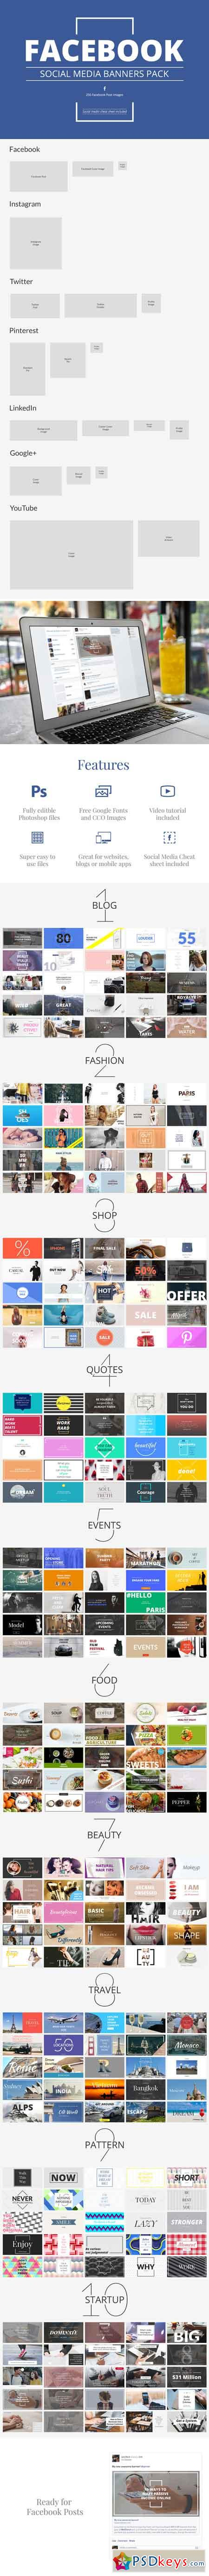 Facebook Social Media Banners Pack 716414